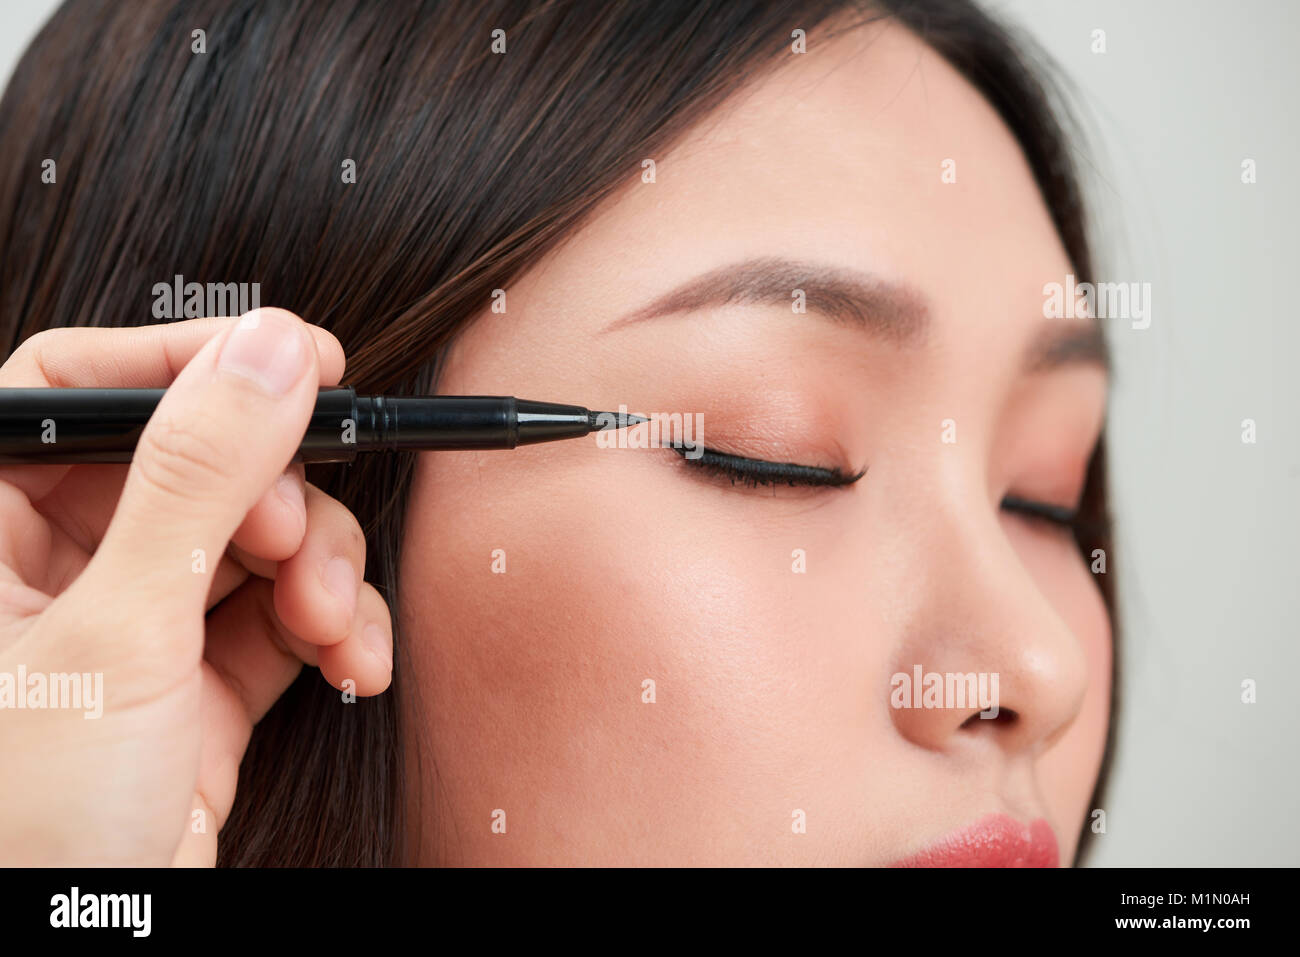 Eyeline Stock Photos Images Alamy Moonlit Eyeliner Fin Close Up Of Beautiful Woman Make With Black Image